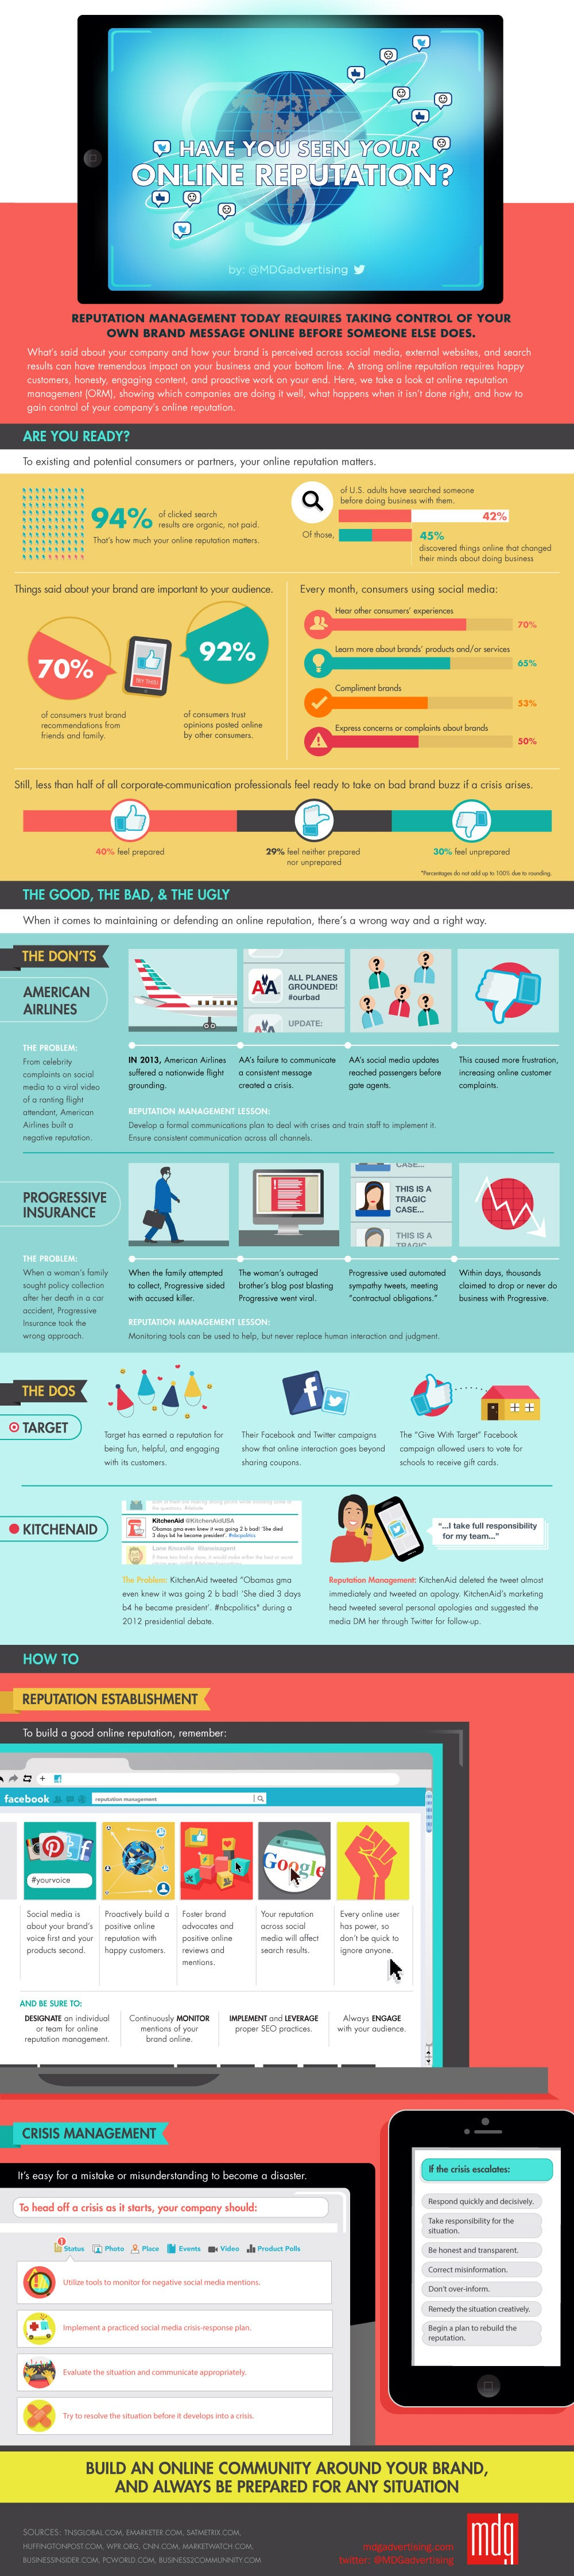 The Key to Building a Strong Online Reputation (Infographic)